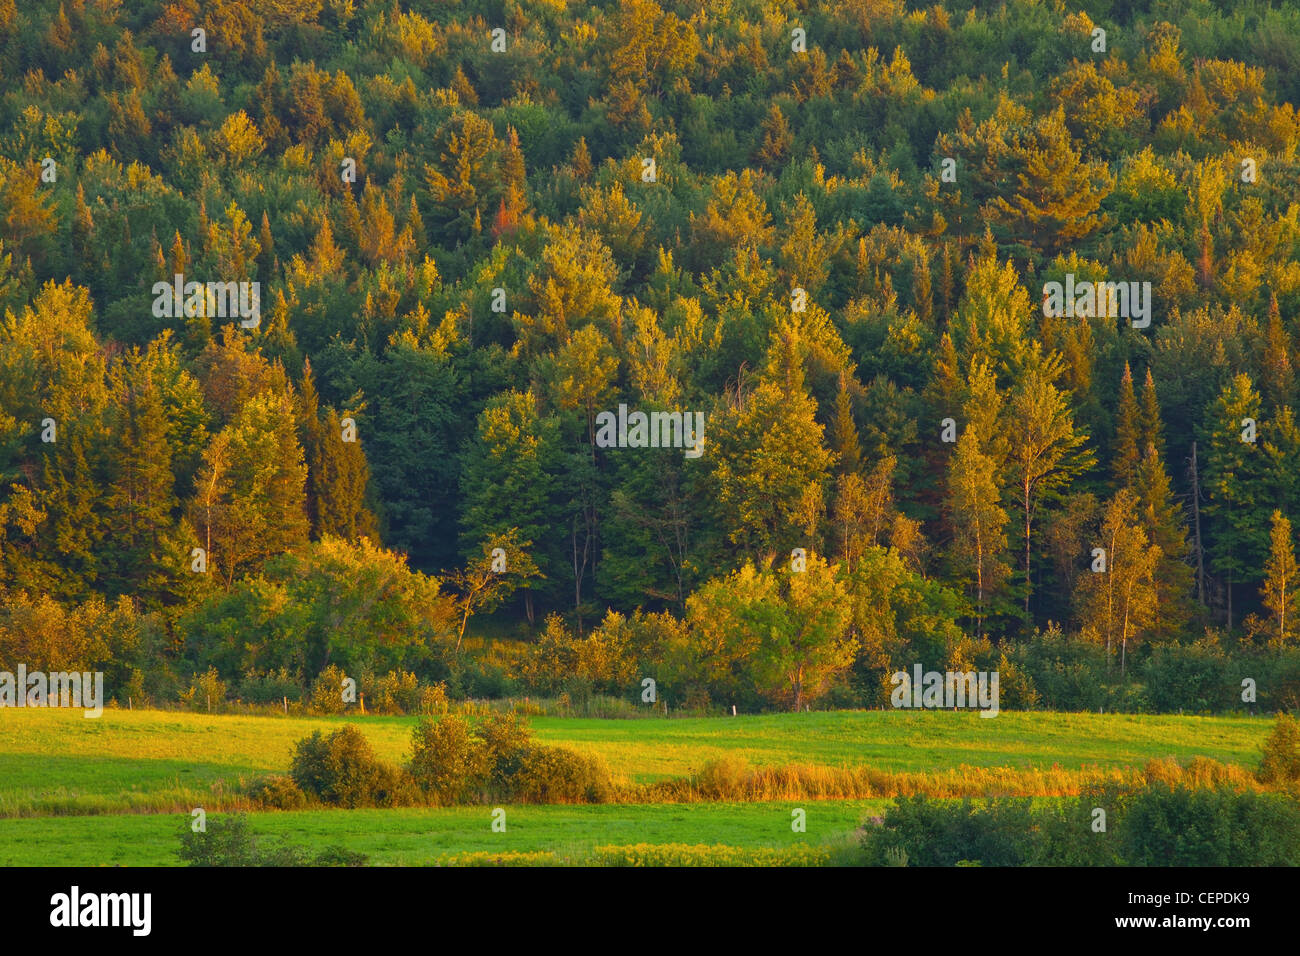 a forest in autumn at sunset; iron hill, quebec, canada - Stock Image